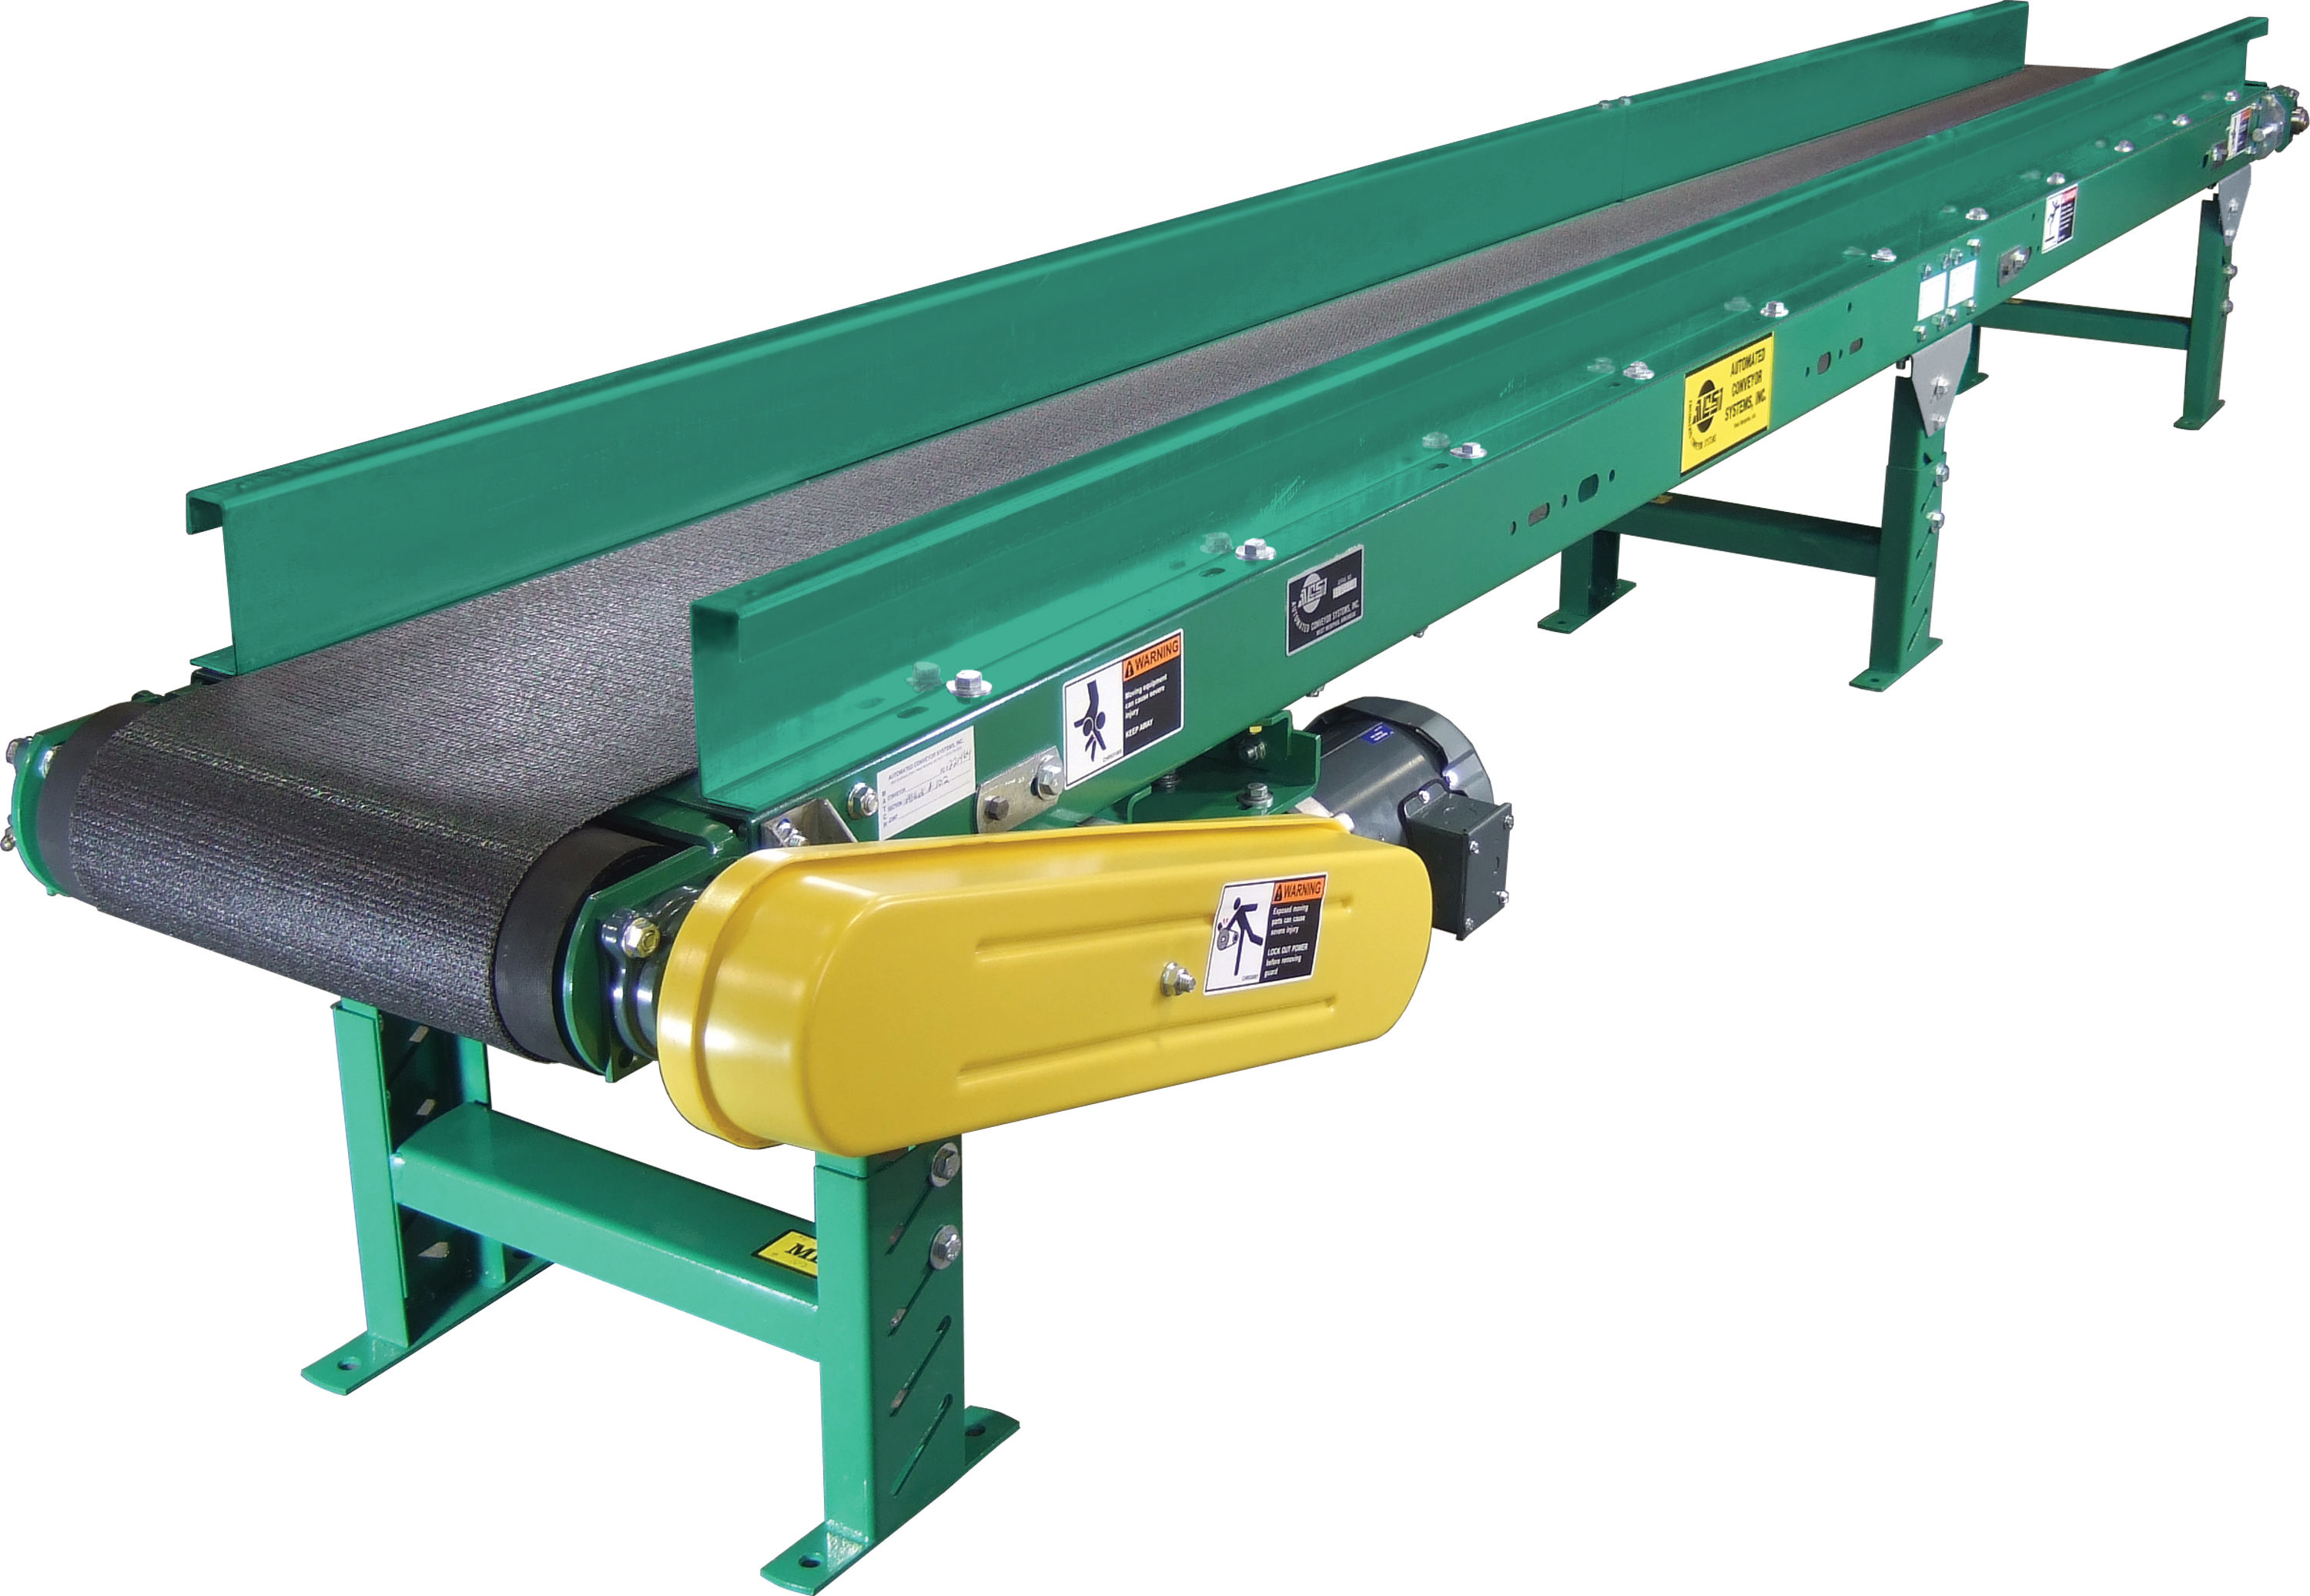 Portable Radial Stacking Conveyor besides 56 Ford Hot Rod further Rope Hoist Pulley System moreover Boss Snow Plow Replacement Parts likewise Jeep Wrangler TJ Front Suspension Diagram. on heavy duty pulley